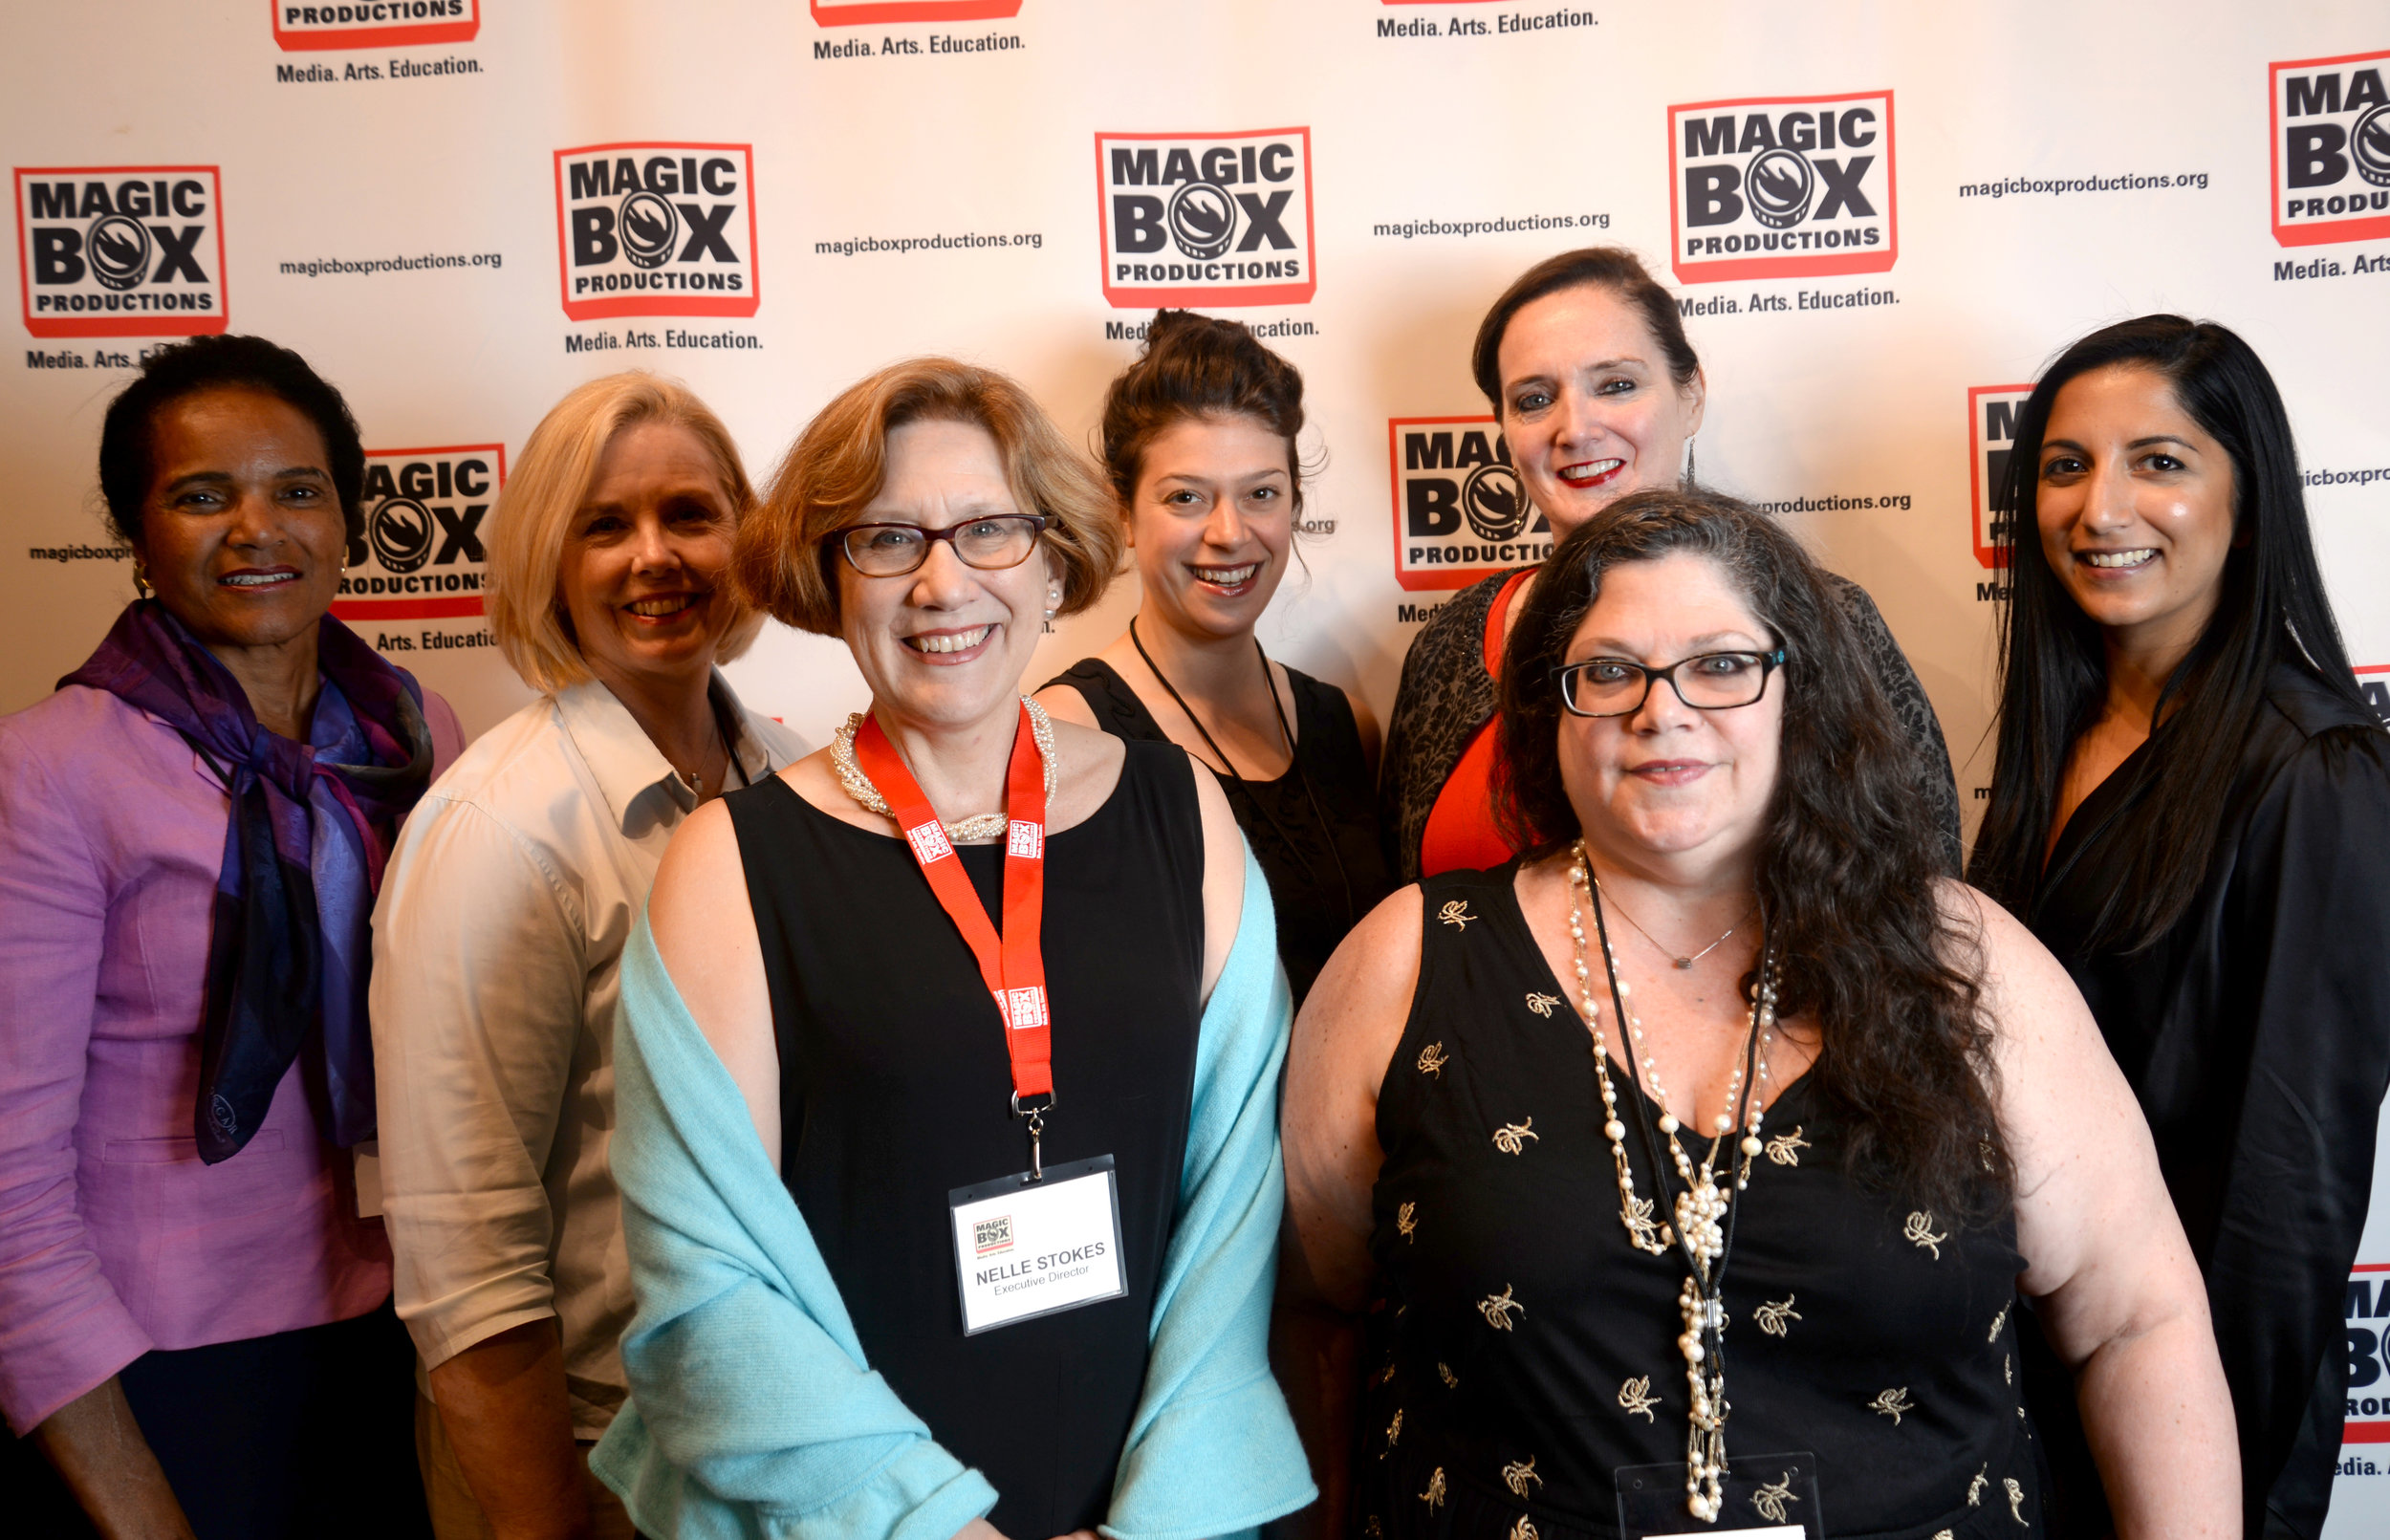 (back row) Executive Board Members:  Annette Nash-Govan, Brette Westerlund, Nora Rodriguez, Nancy Barry, Pashmeena Hilal (front row) Executive Director Nelle Stokes, Board Member Nancy Camarata